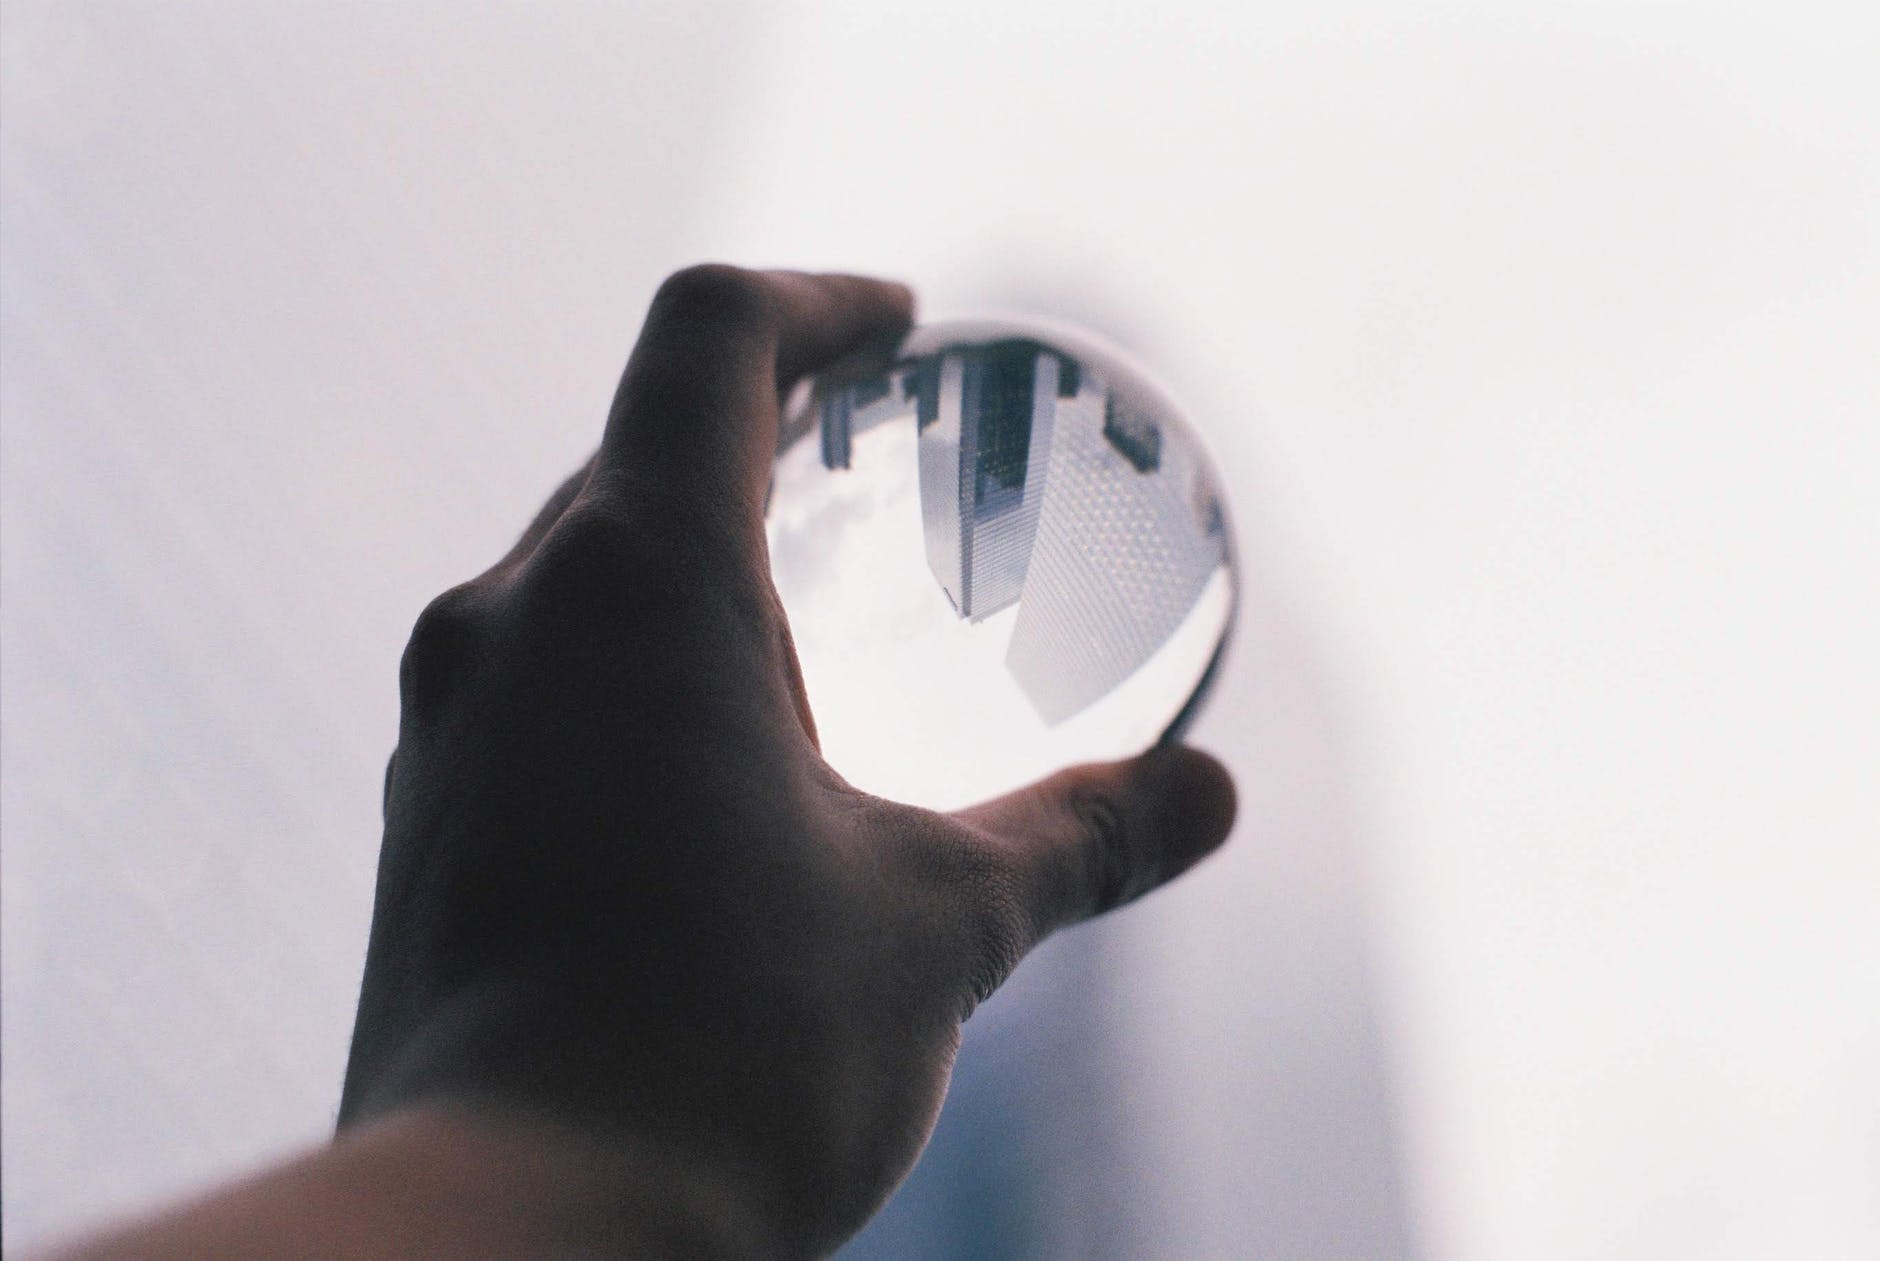 cityscape reflecting in glass ball